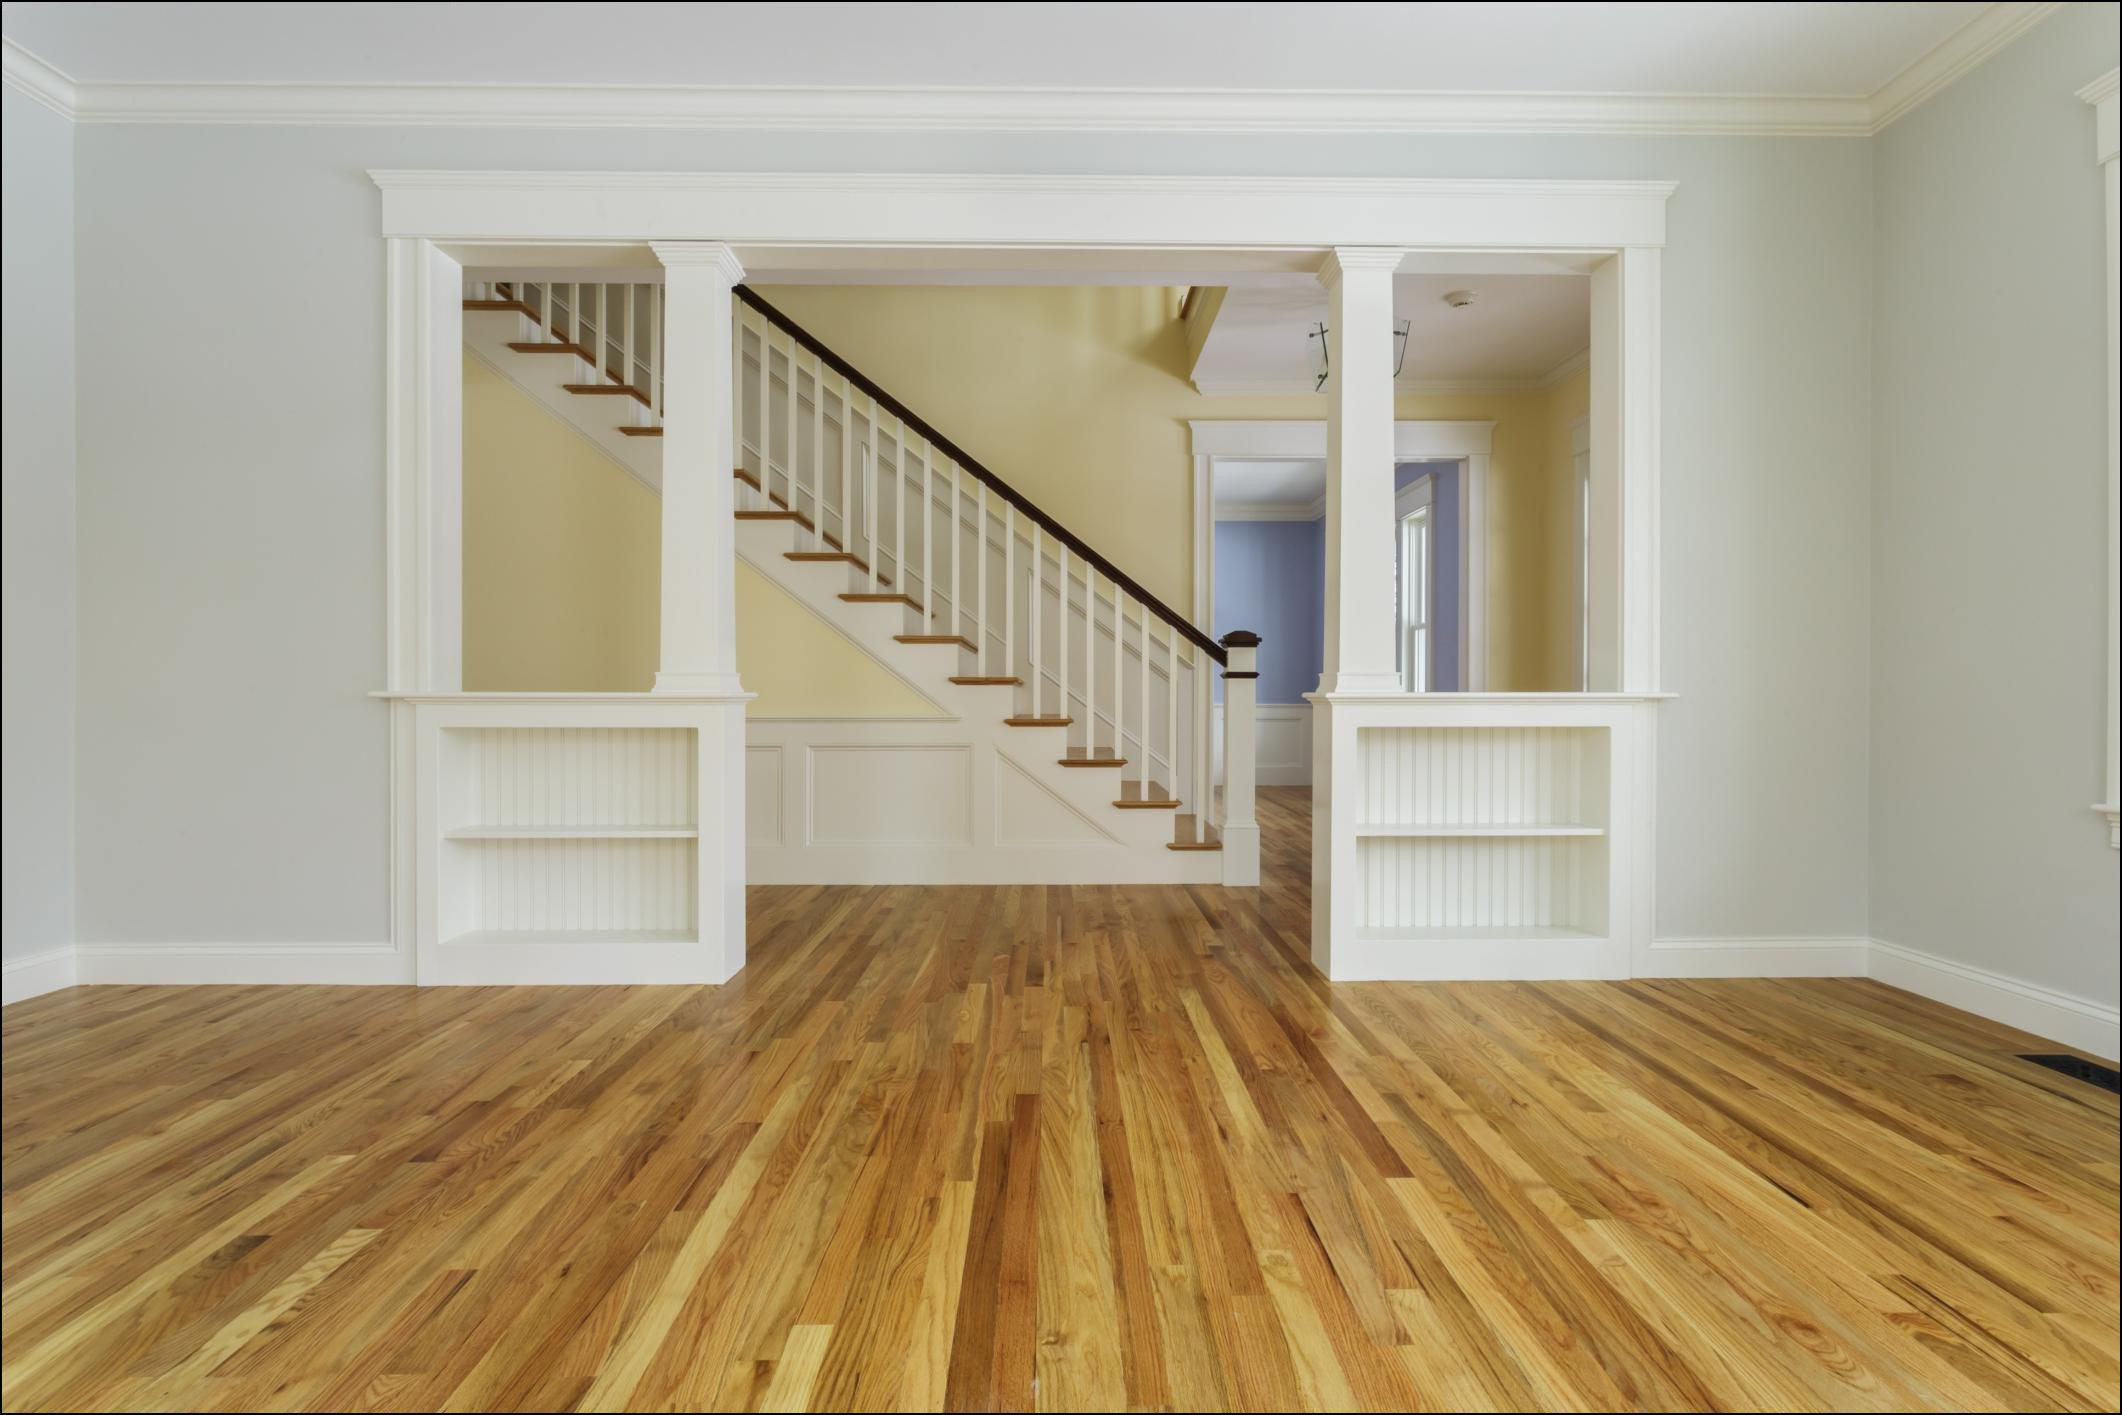 Hardwood Floor Width Of Hardwood Flooring Suppliers France Flooring Ideas In Hardwood Flooring Cost for 1000 Square Feet Stock Guide to solid Hardwood Floors Of Hardwood Flooring